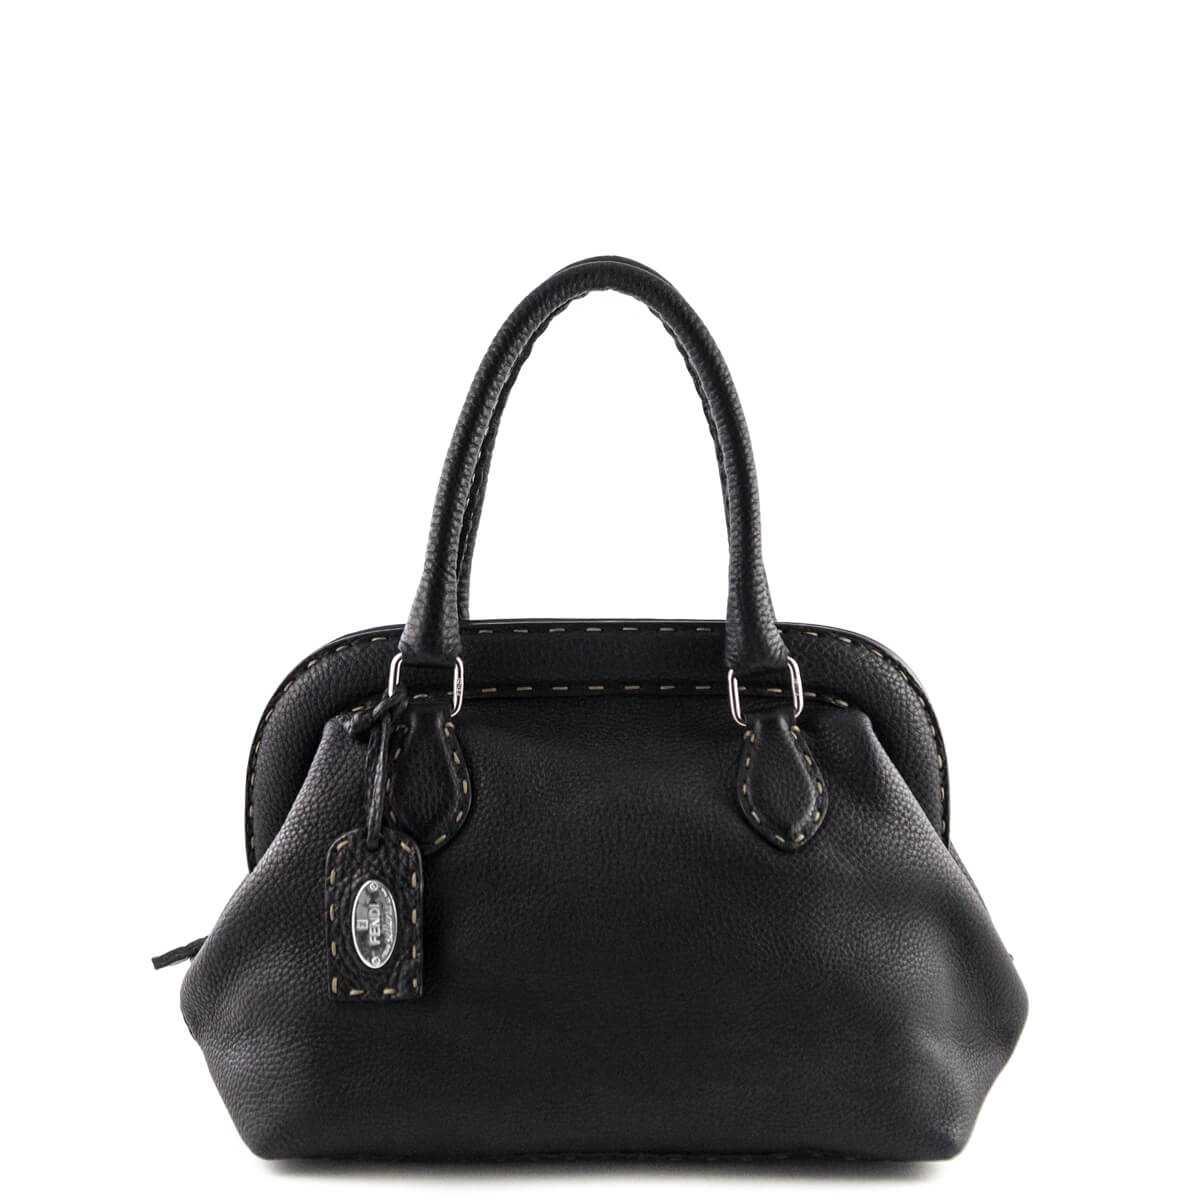 6476d39960 Fendi Black Selleria Adele Frame Bag - LOVE that BAG - Preowned Authentic  Designer Handbags ...